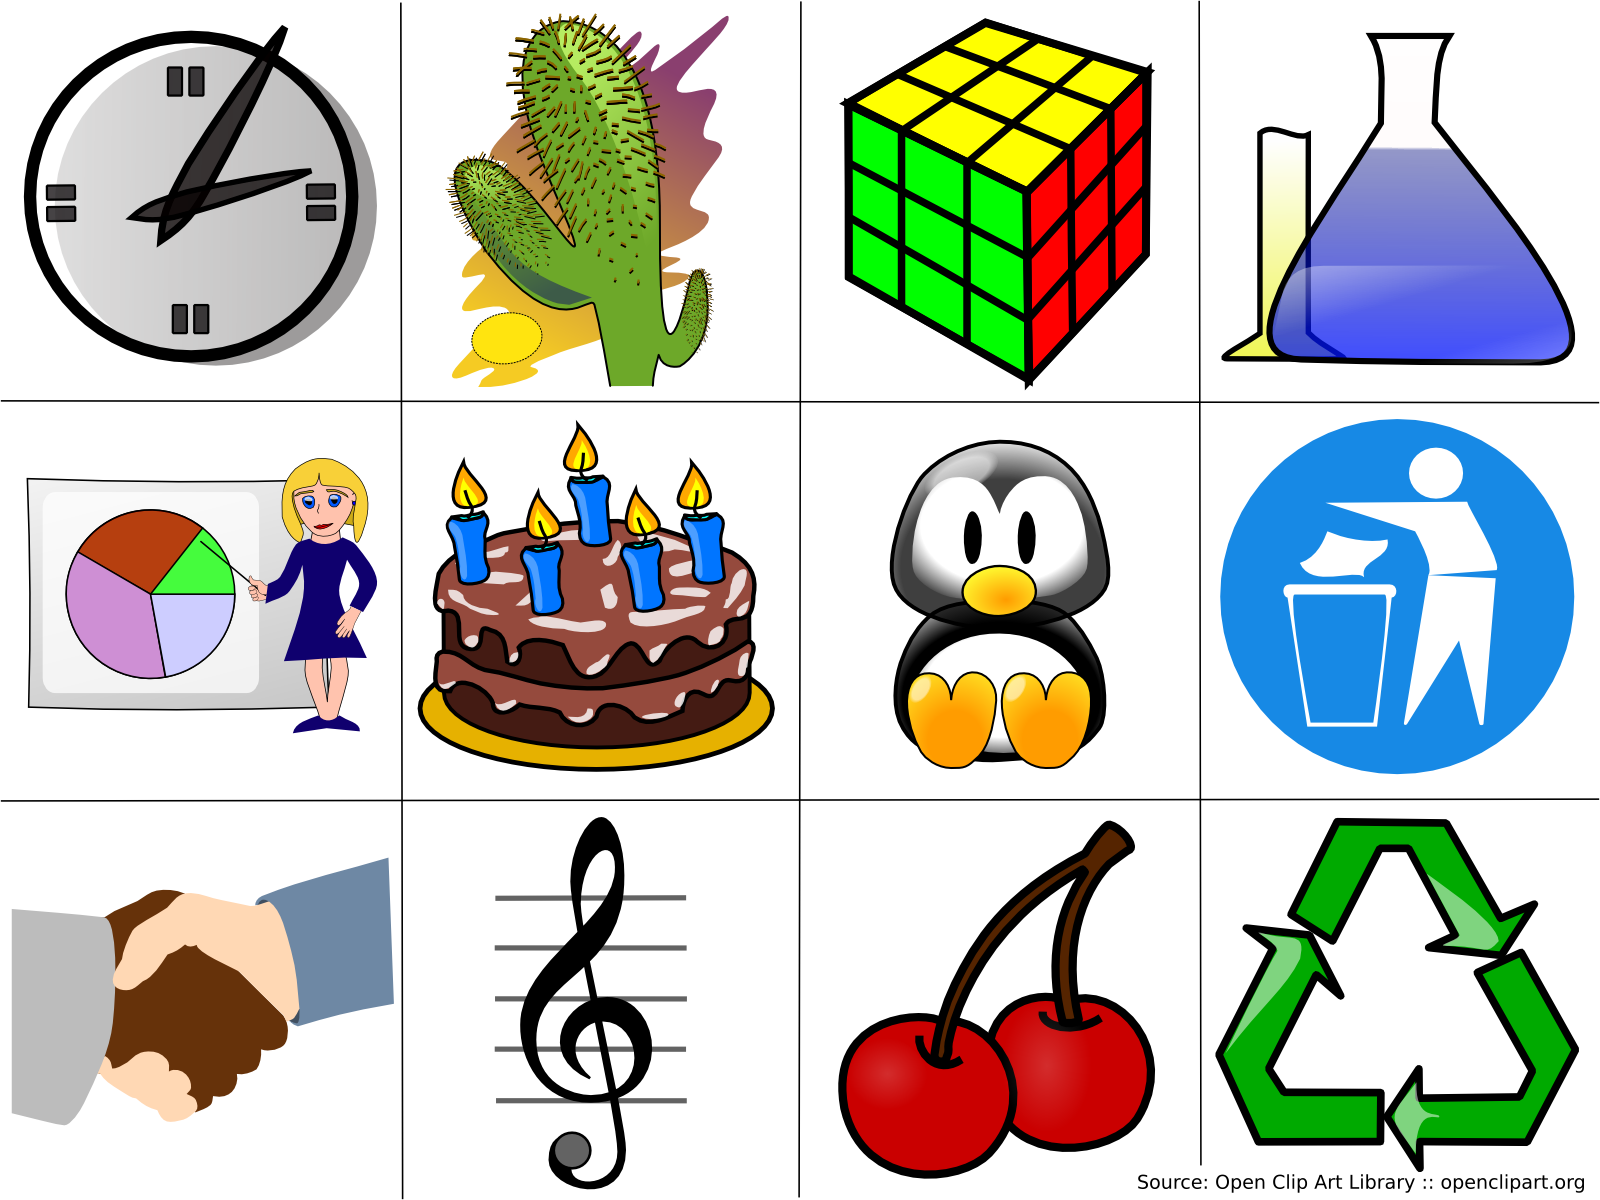 Clip art - Wikipedia, the free encyclopedia